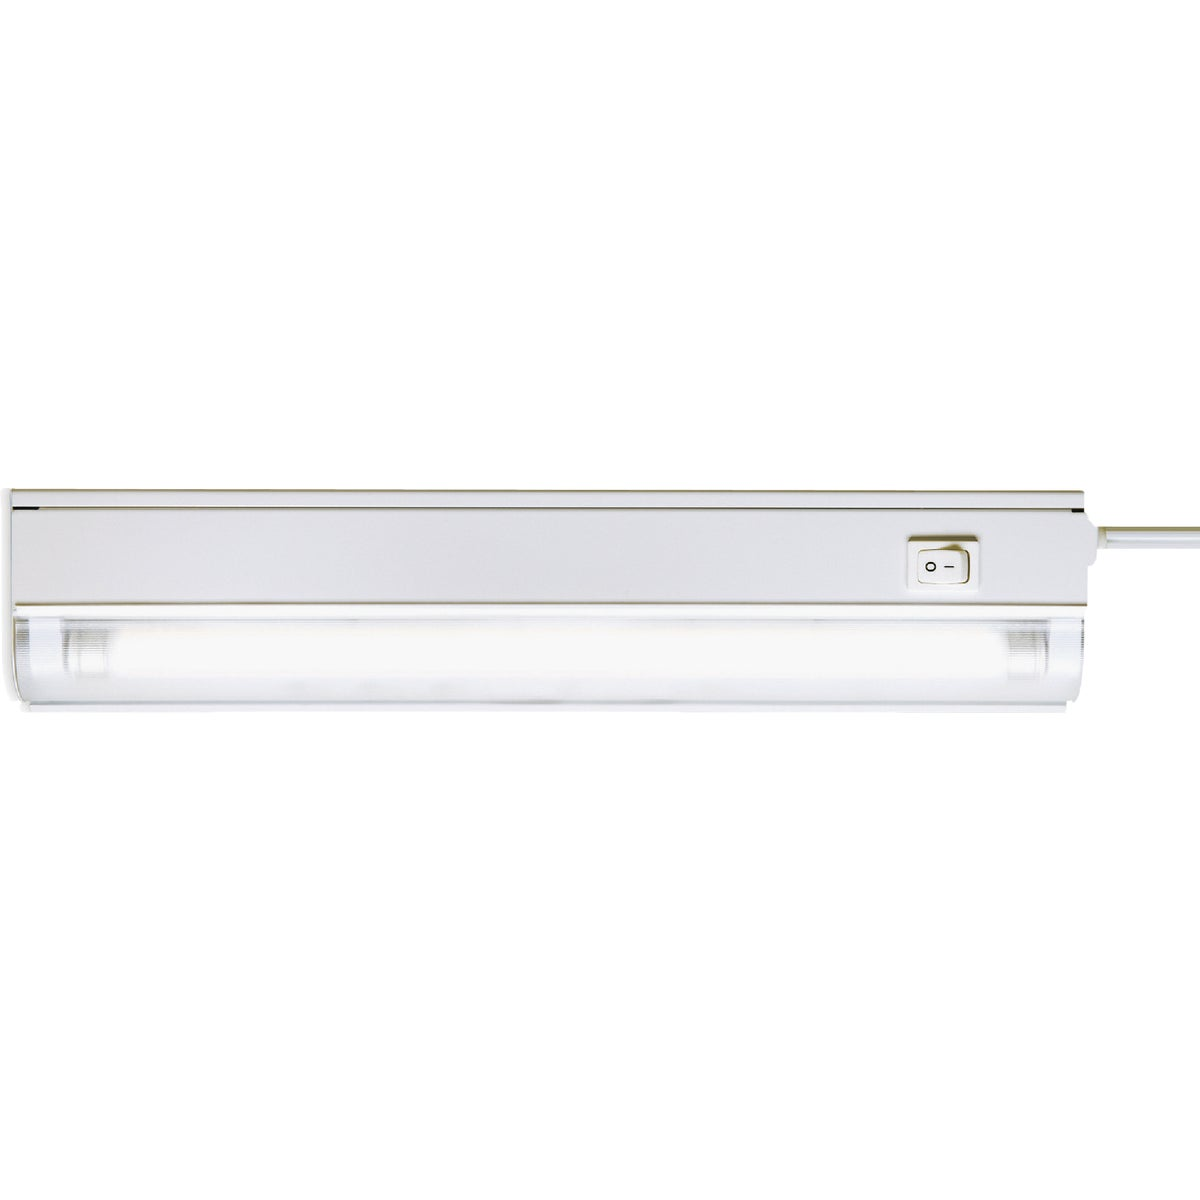 "12.5"" UNDERCABINET LIGHT"